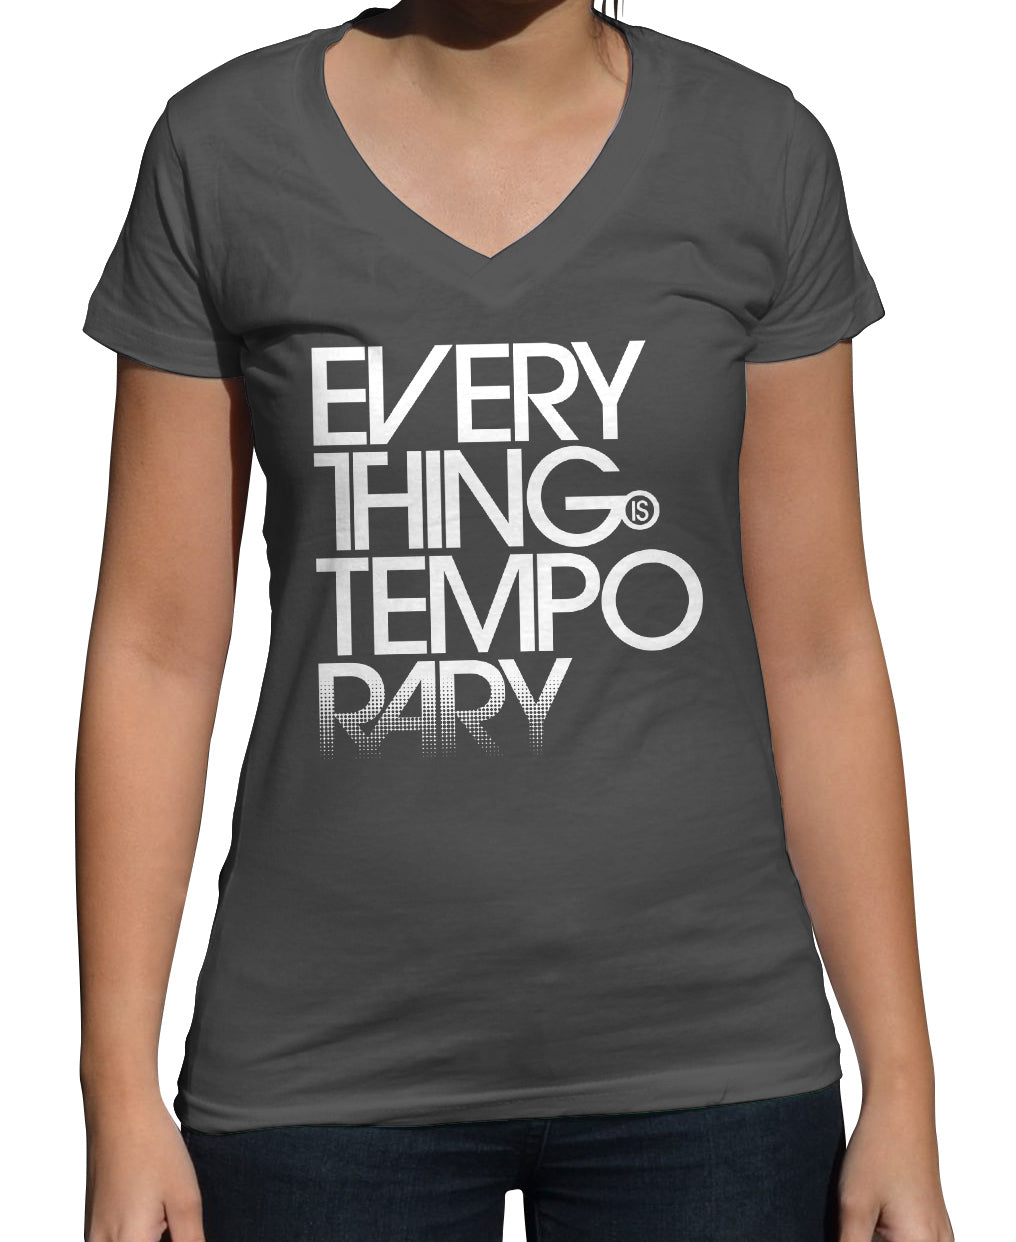 Women's Everything is Temporary Vneck T-Shirt